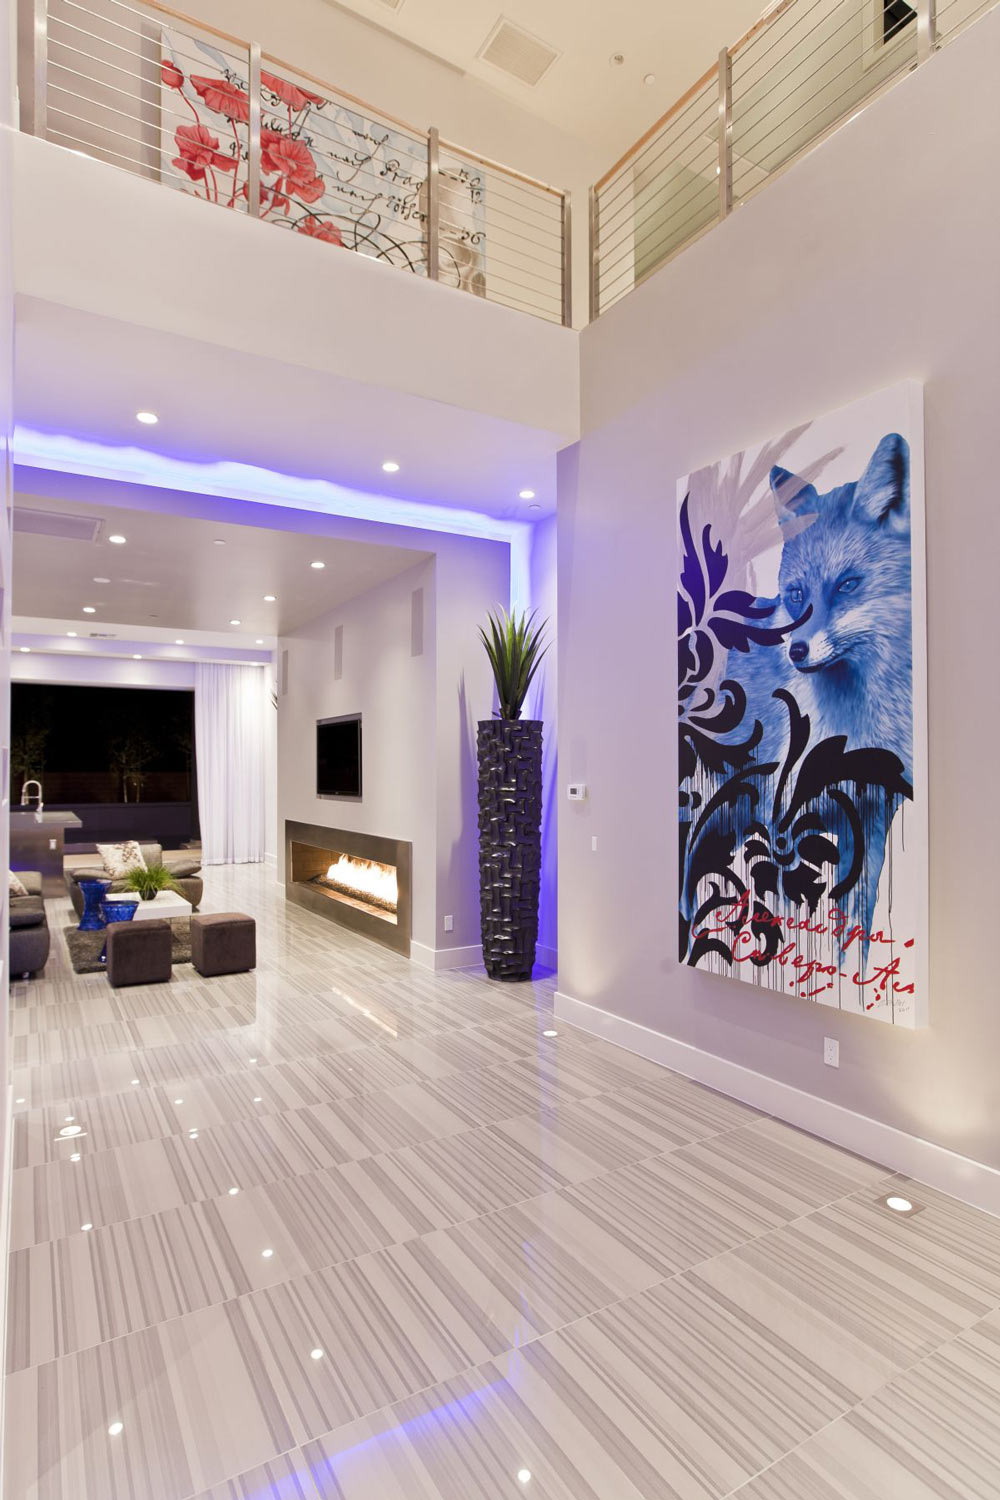 LED Lighting, Modern Fireplace, Hurtado Residence in Las Vegas by Mark Tracy of Chemical Spaces